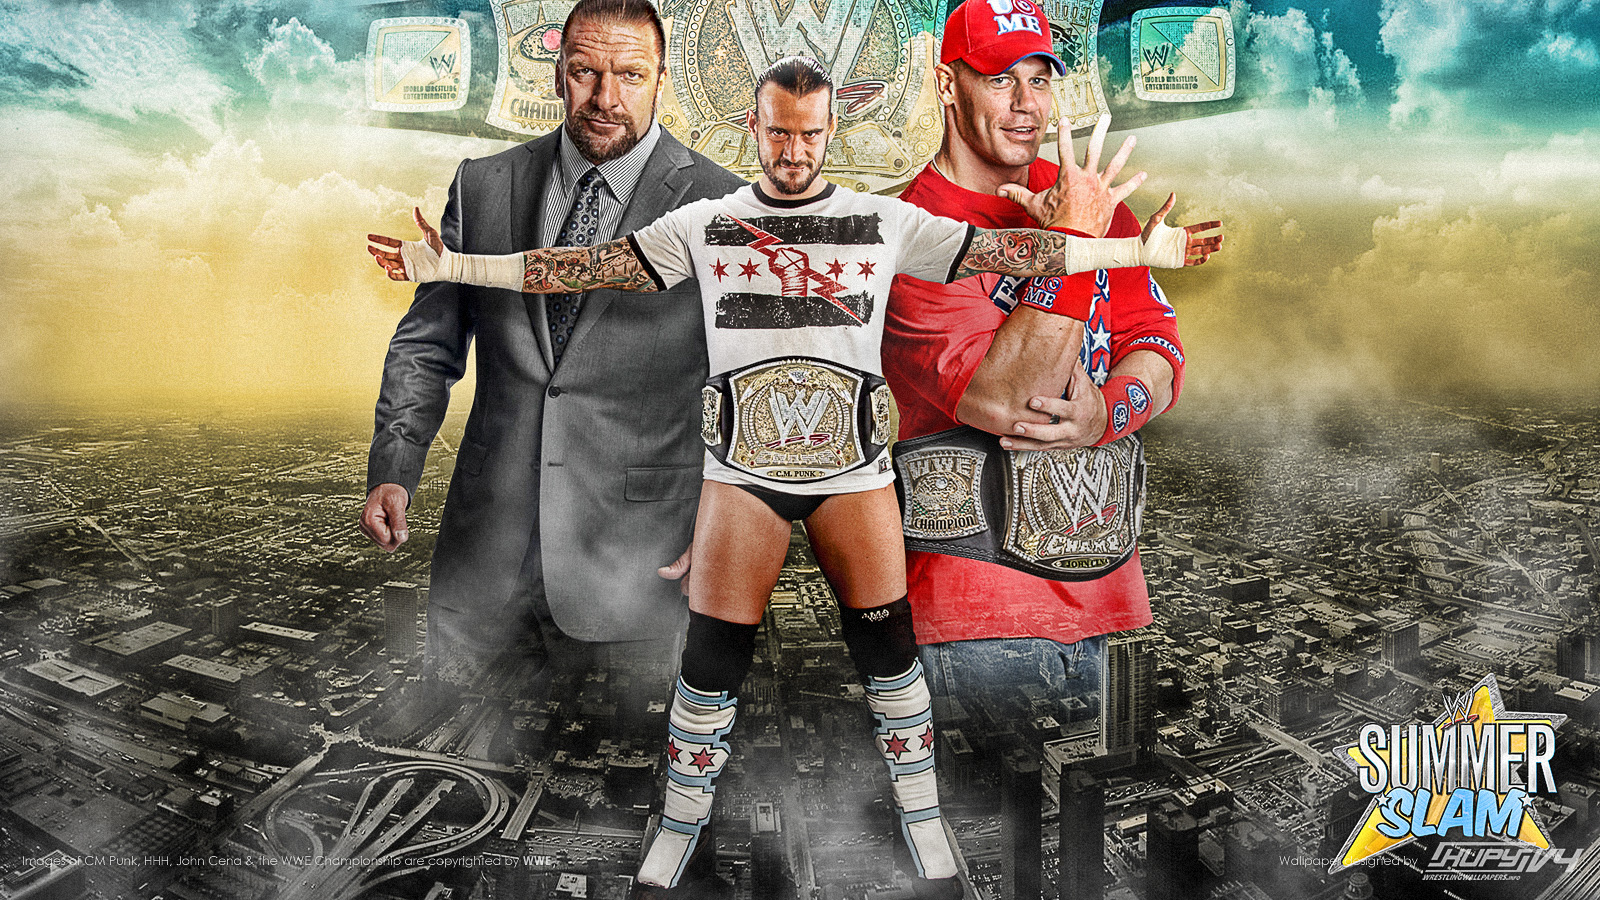 Kupywrestlingwallpapersfo the newest wrestling wallpapers on cm punk wallpaper 19201200 16801050 1600900 voltagebd Choice Image